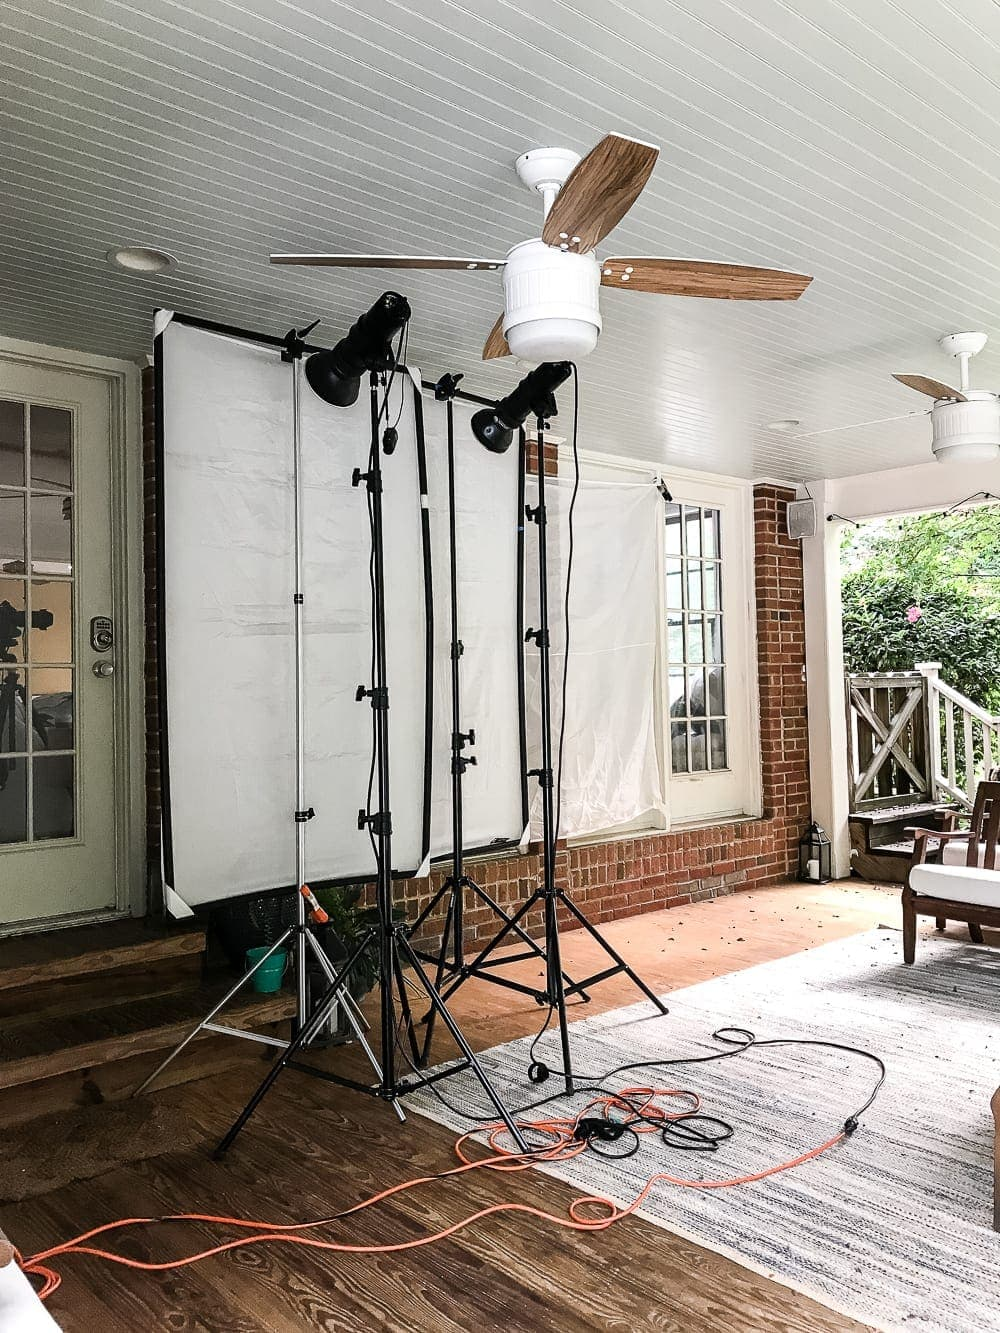 Better Homes and Gardens Magazine Photo Shoot | blesserhouse.com - A recap and behind-the-scenes of a Better Homes and Gardens magazine photo shoot DIY Window Seat #betterhomesandgardens #photoshoot